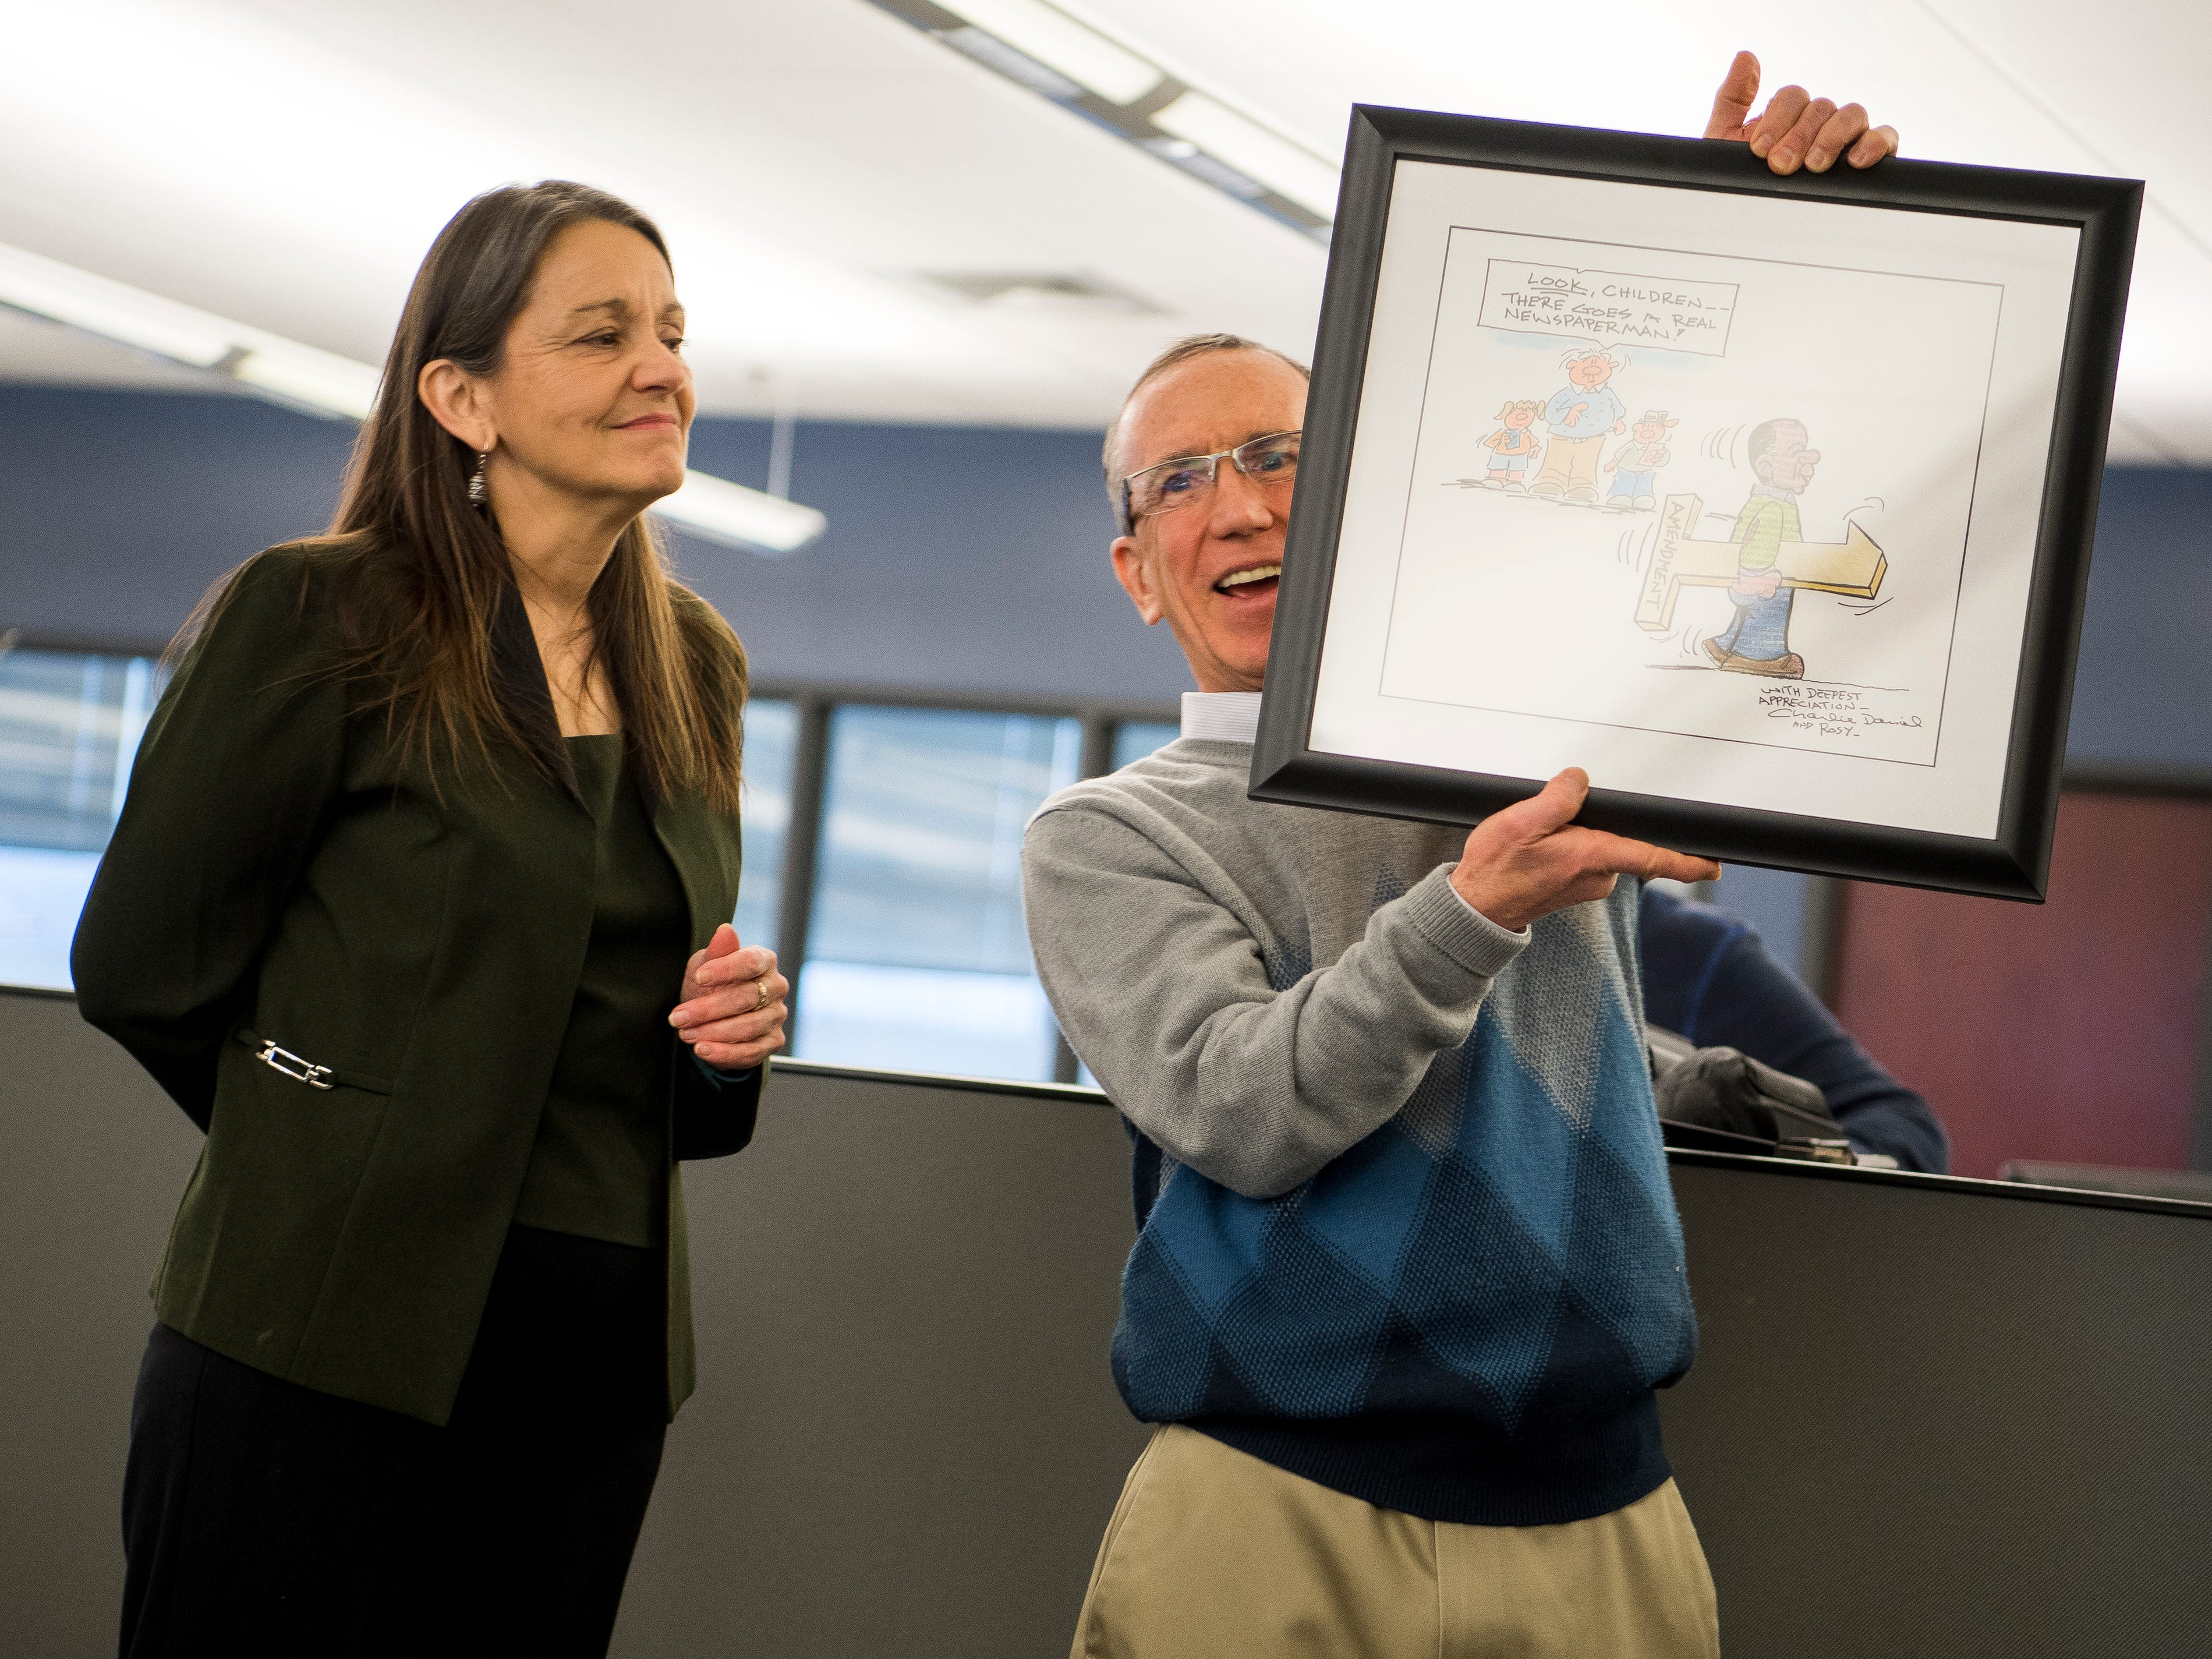 News Sentinel Executive Editor Jack McElroy shows the newsroom his custom Charlie Daniel cartoon during a celebration for the retirements of executive editor Jack McElroy and cartoonist Charlie Daniel in the News Sentinel newsroom on Friday, February 1, 2019.